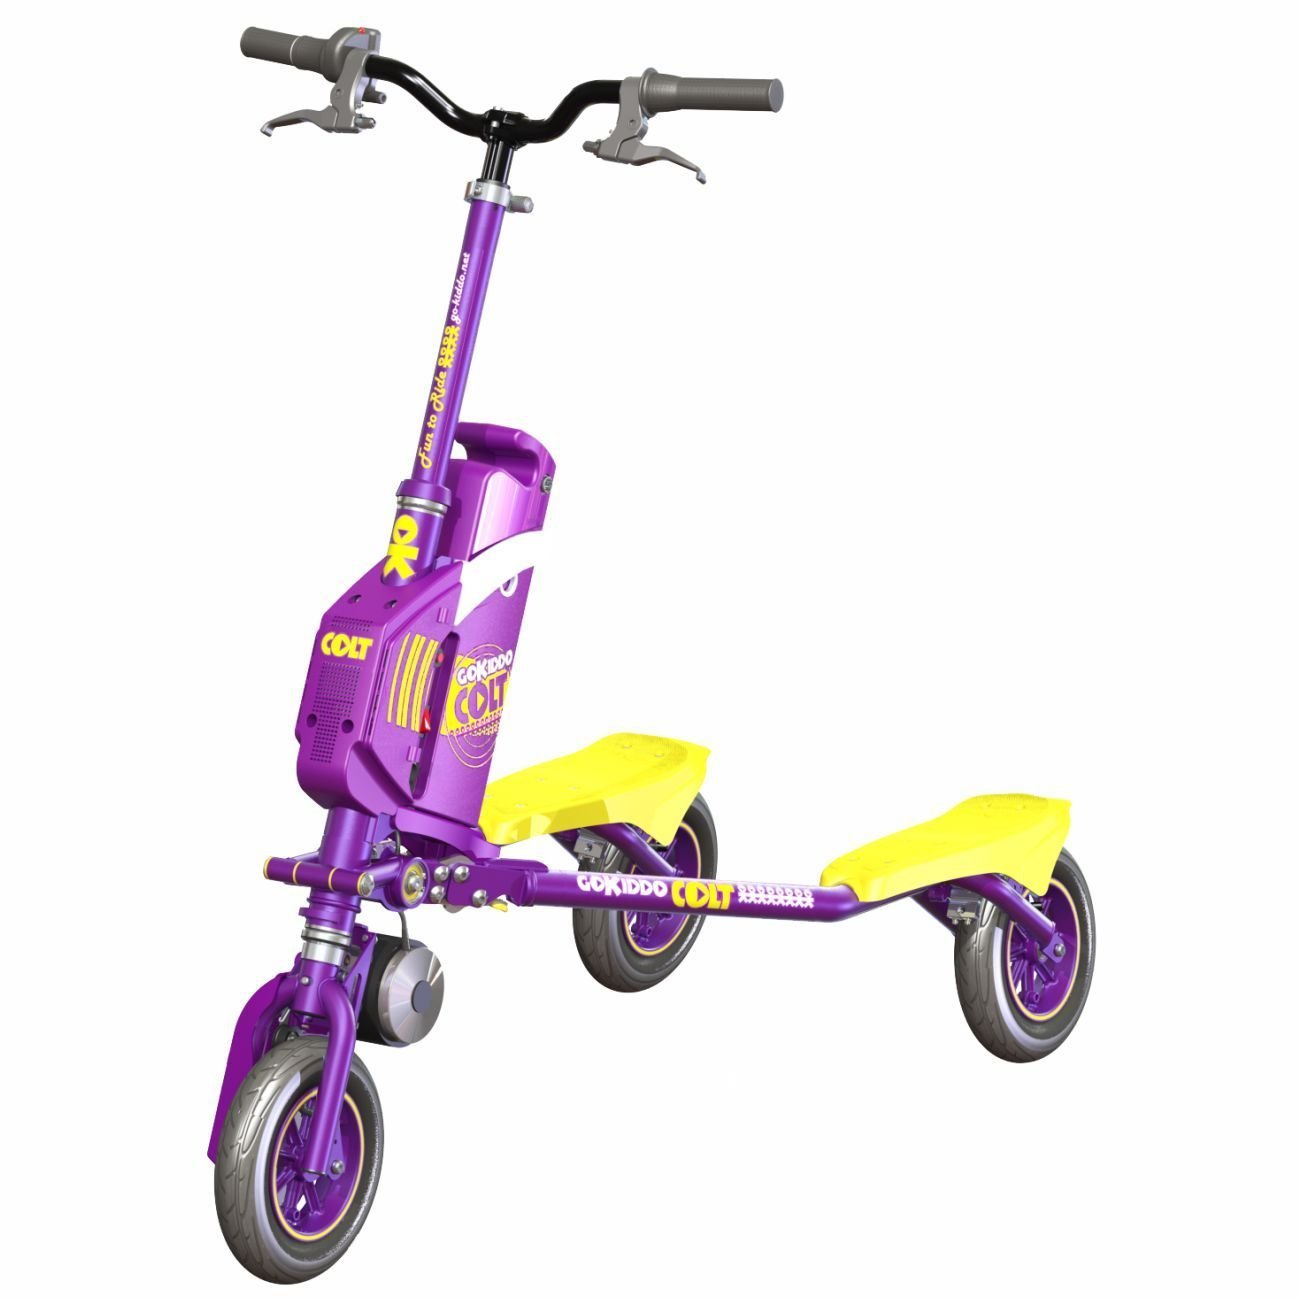 Go-Kiddo COLT Electric Carving Scooter, Purple